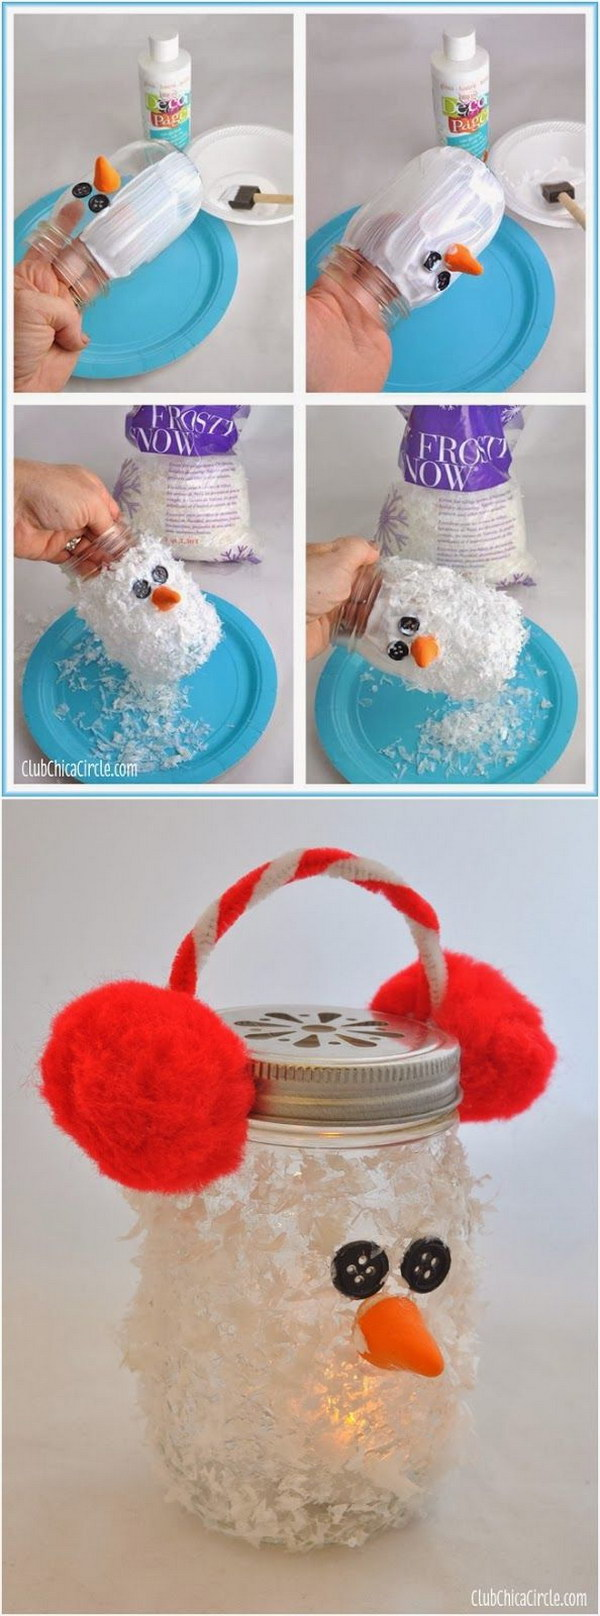 diy festa frozen decoracao